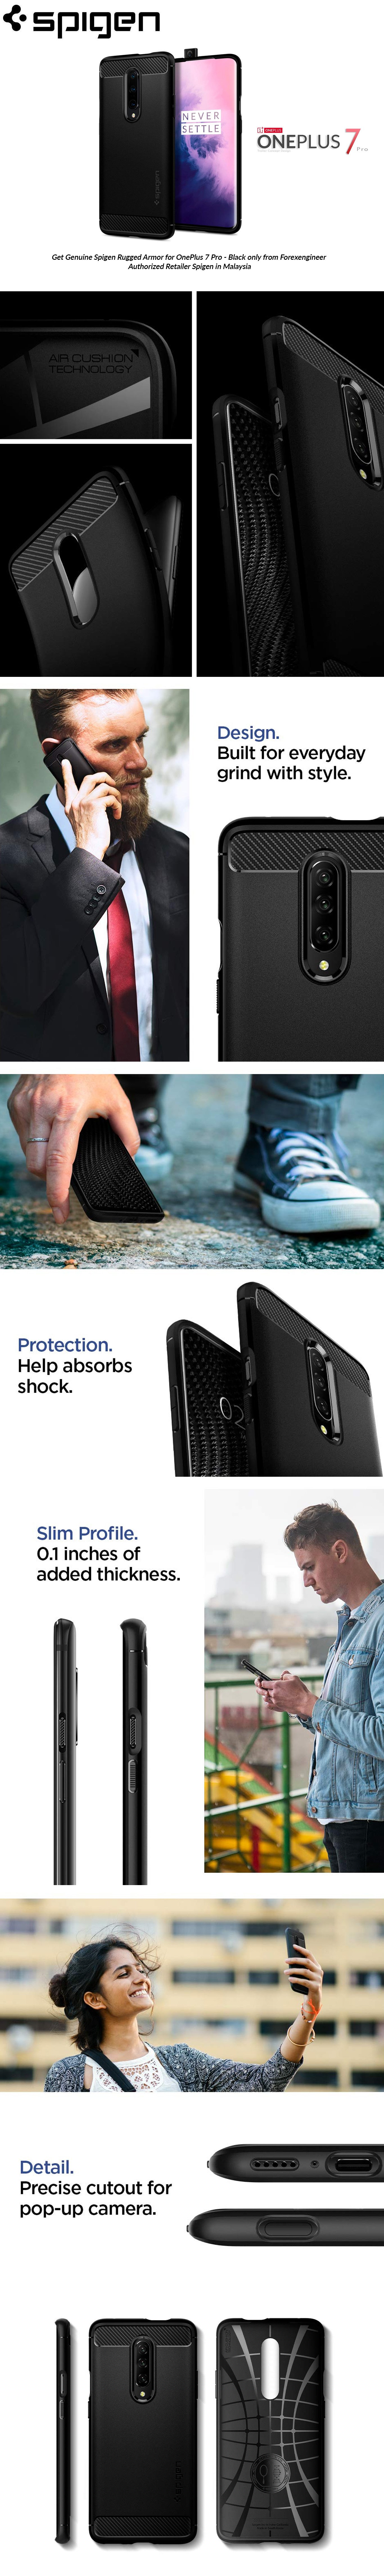 1-des-spigen-rugged-armor-oneplus-7-pro-black-forexengineer-authorised-retailer